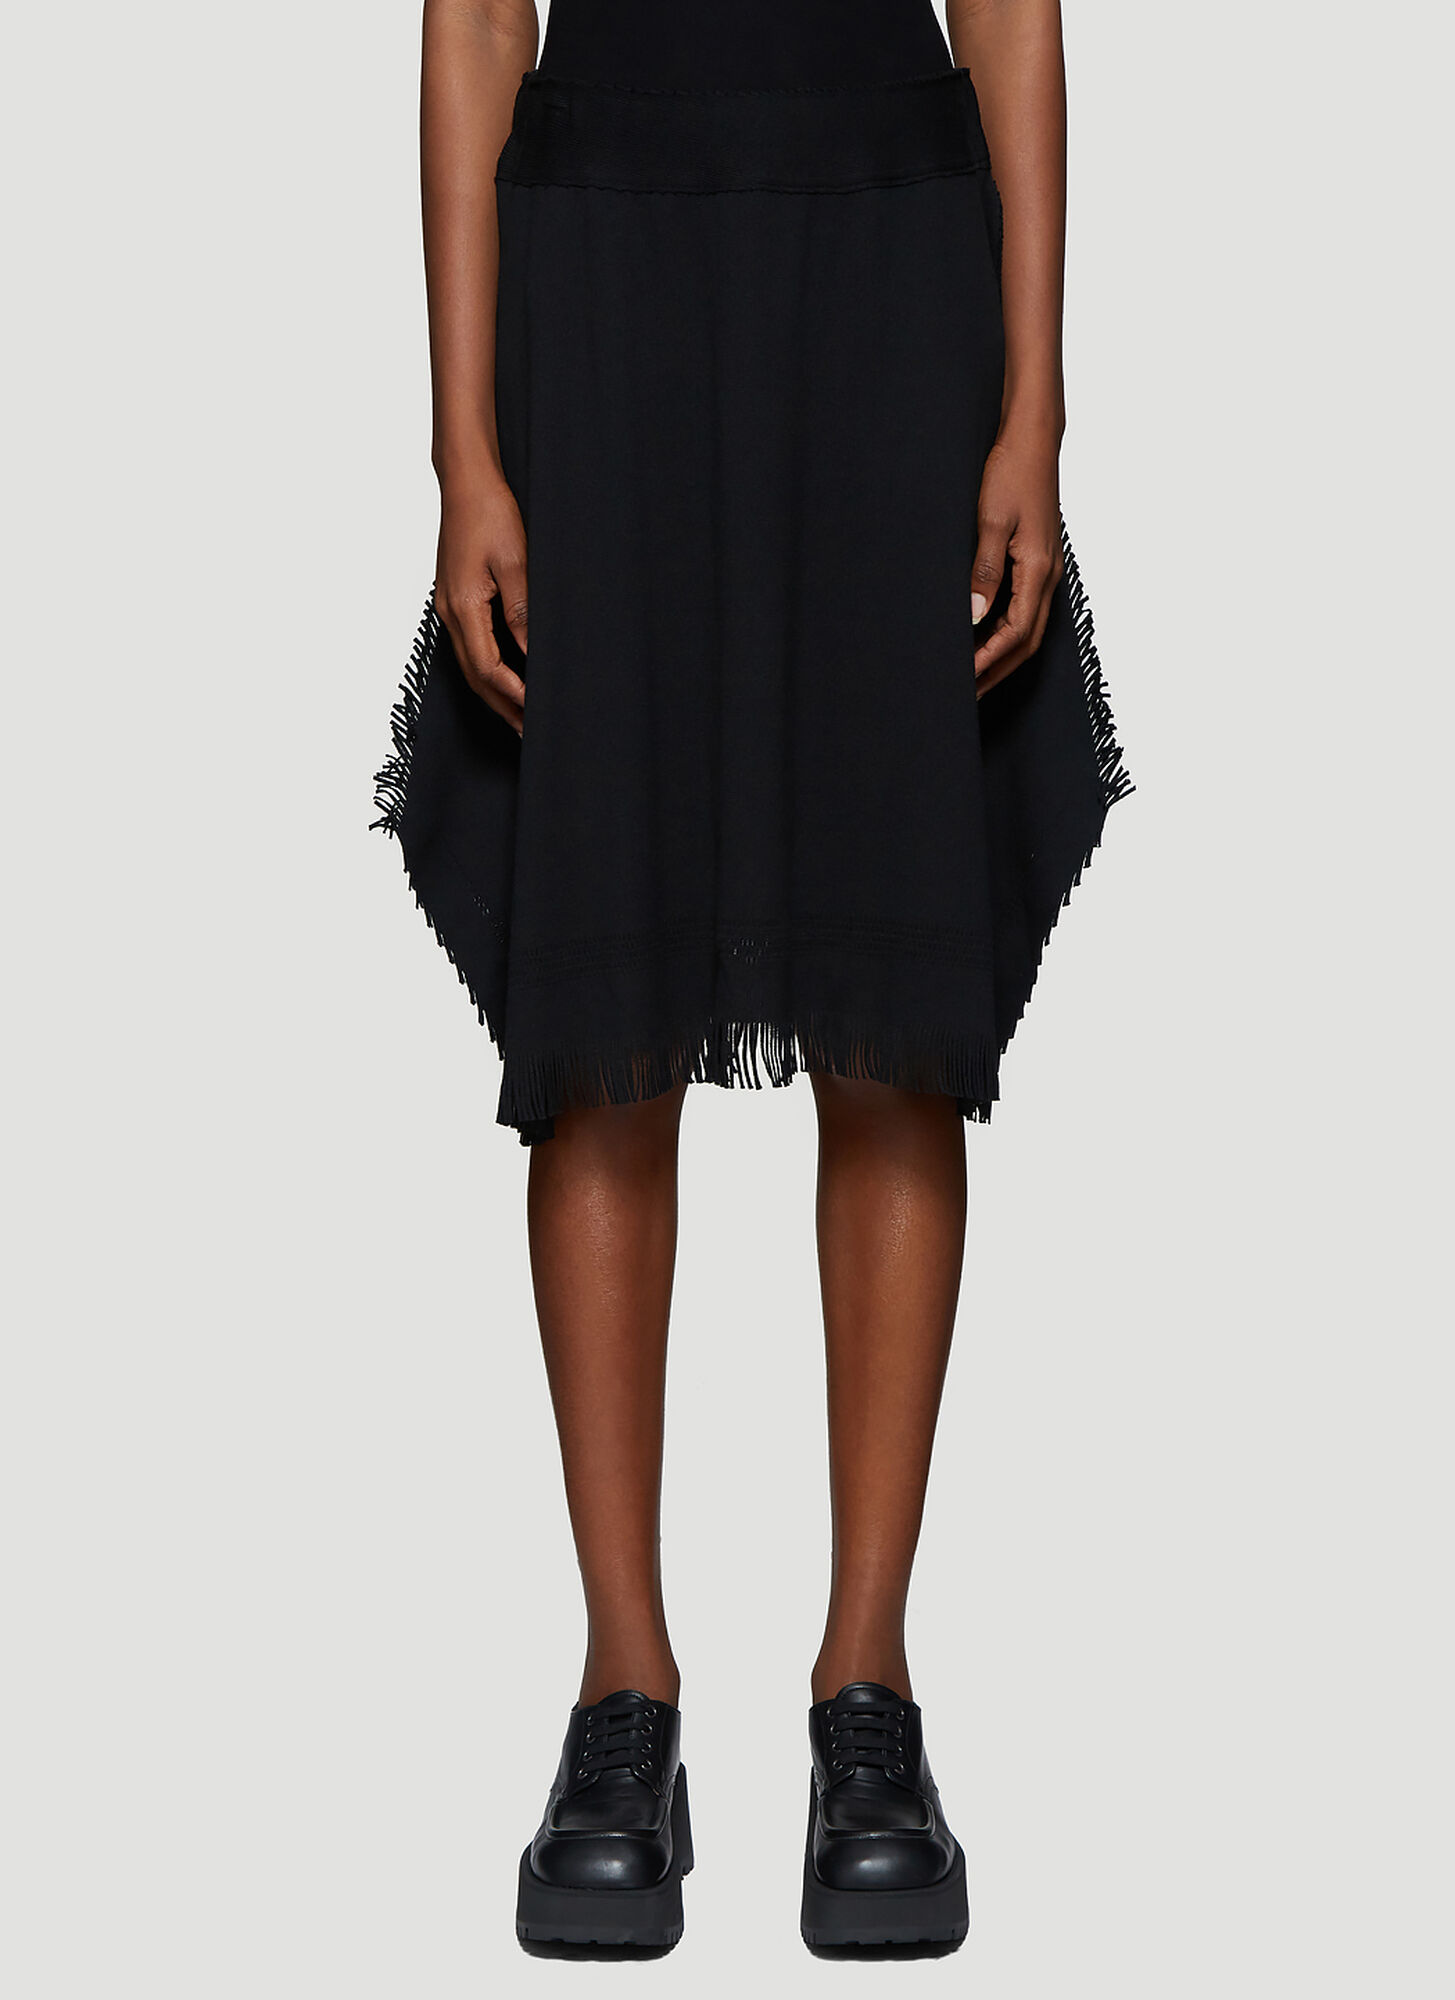 Issey Miyake Fringed-Trim Knitted Skirt in Black